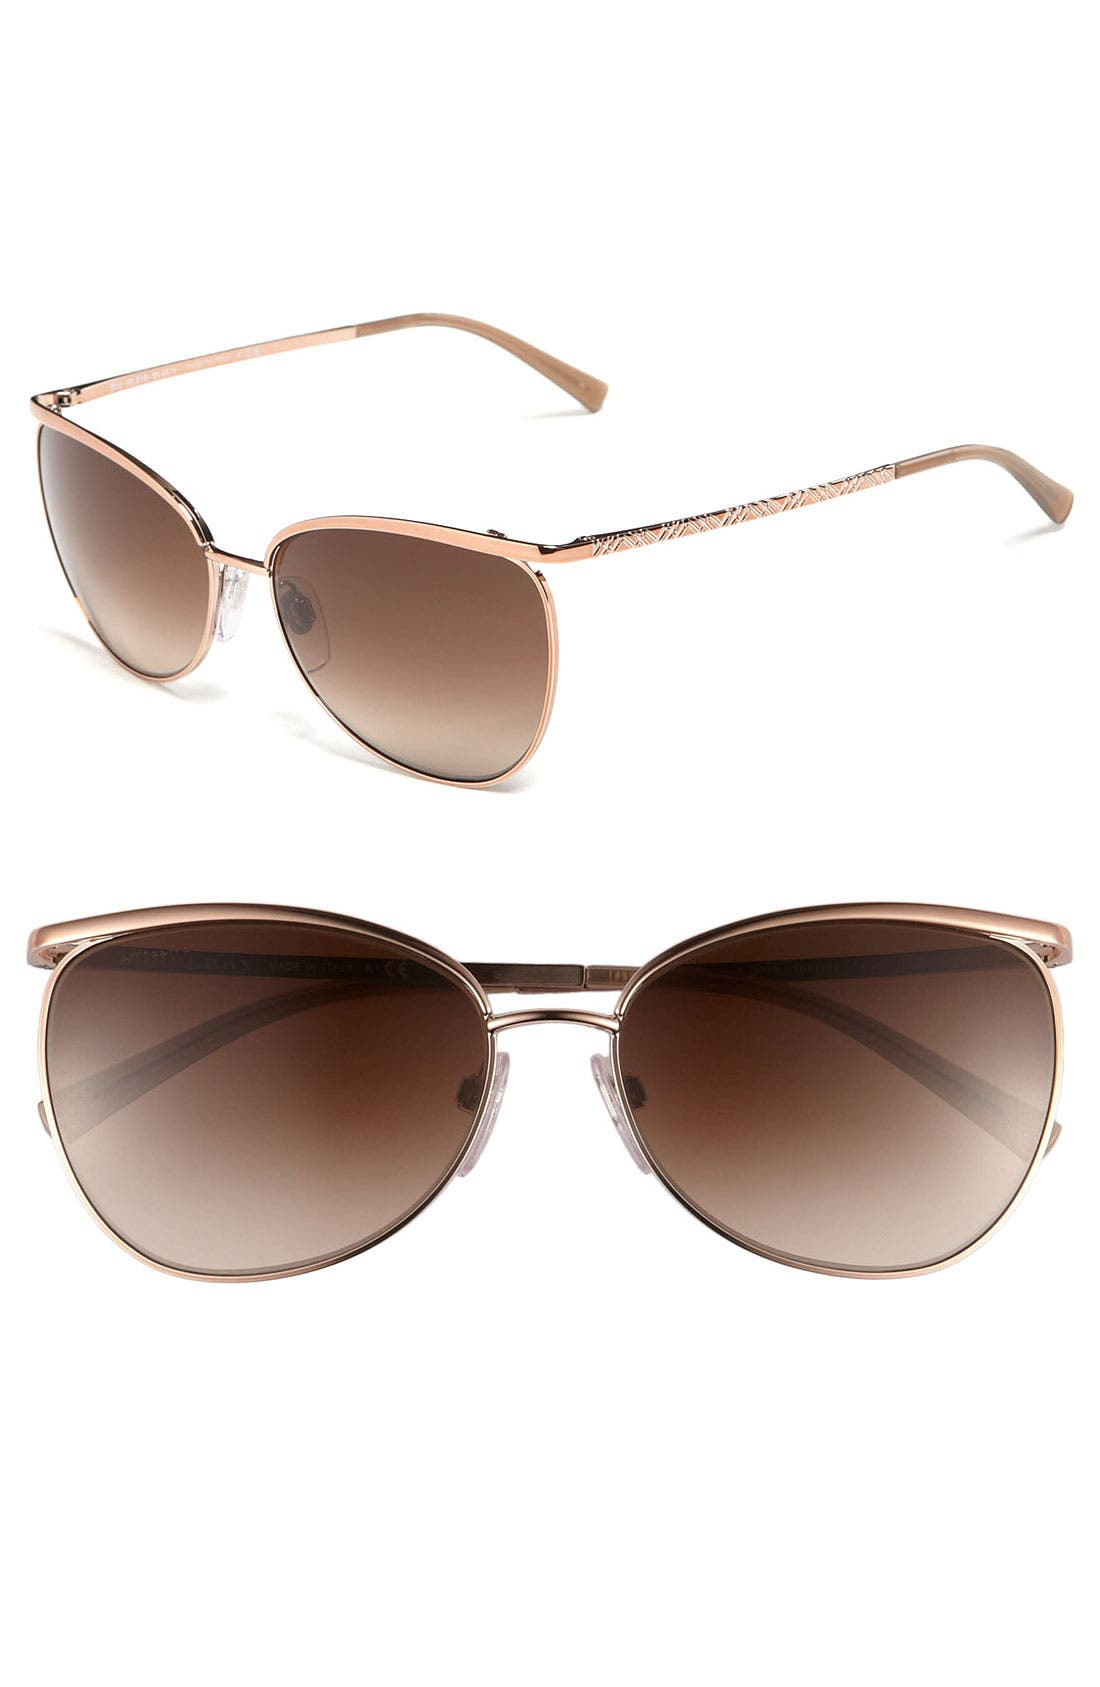 Alternate Image 1 Selected - Burberry 58mm Metal Cat's Eye Sunglasses